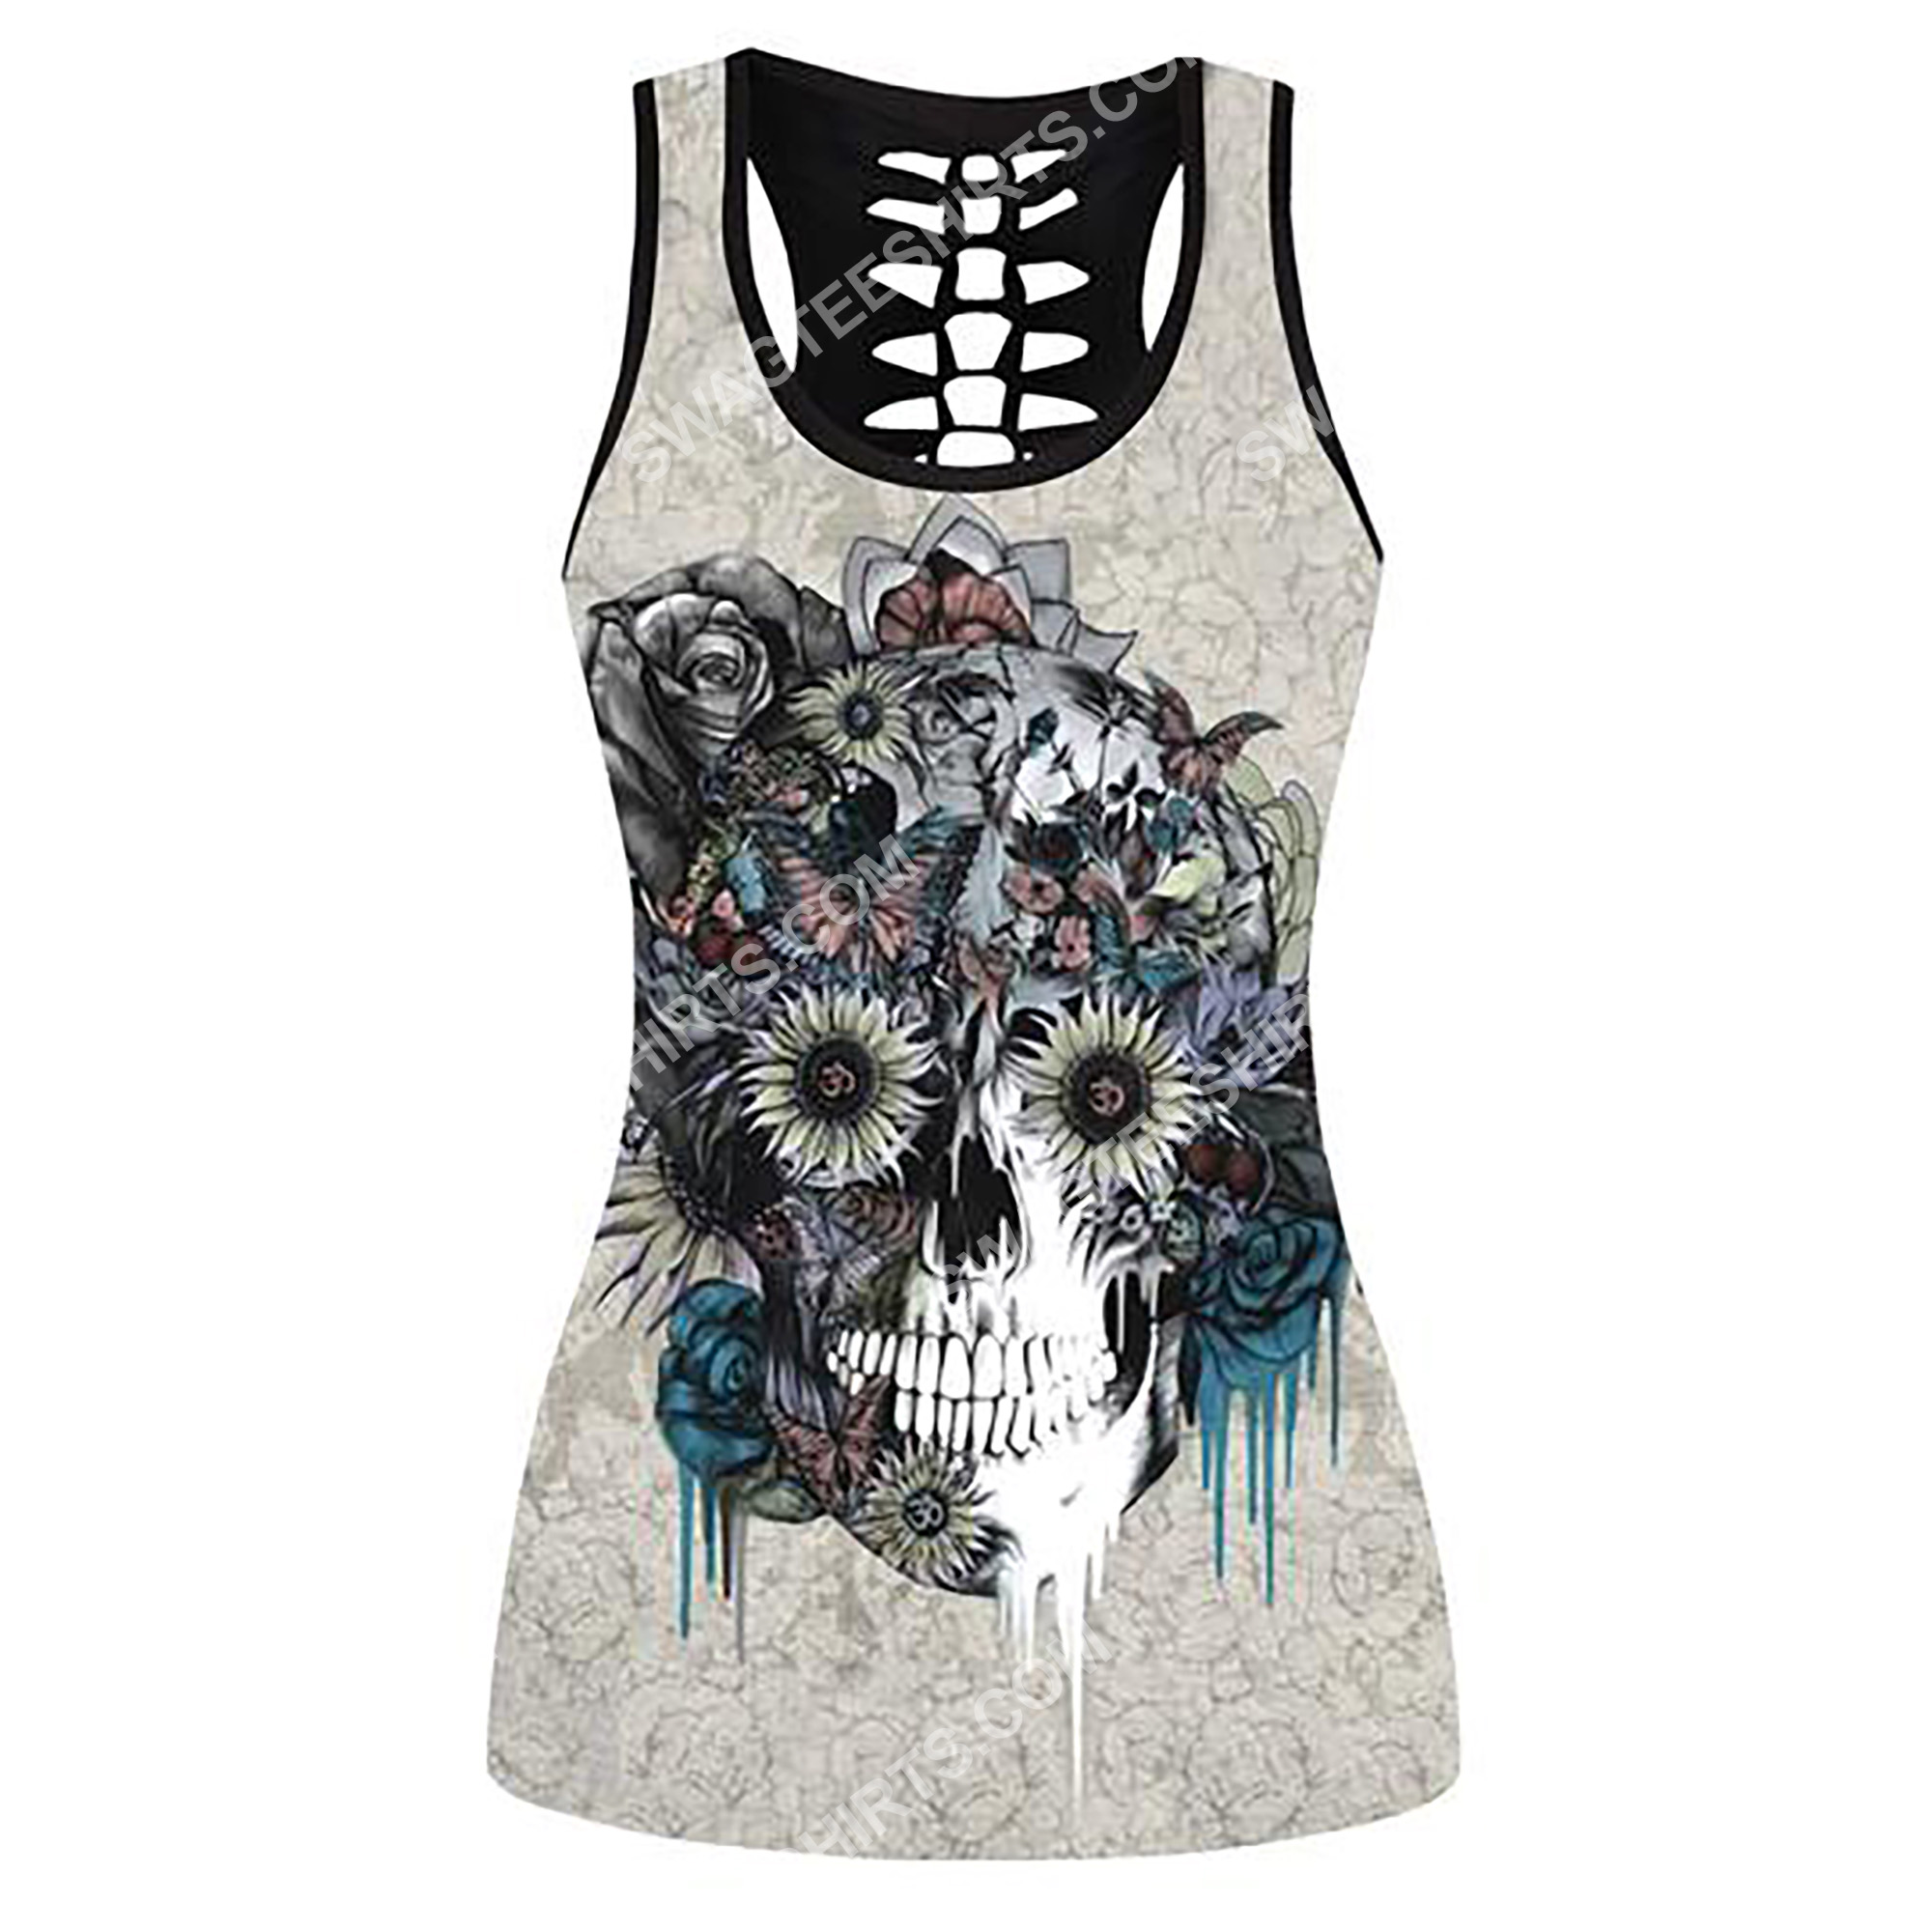 flower and skull full printing hollow tank top 2(2) - Copy